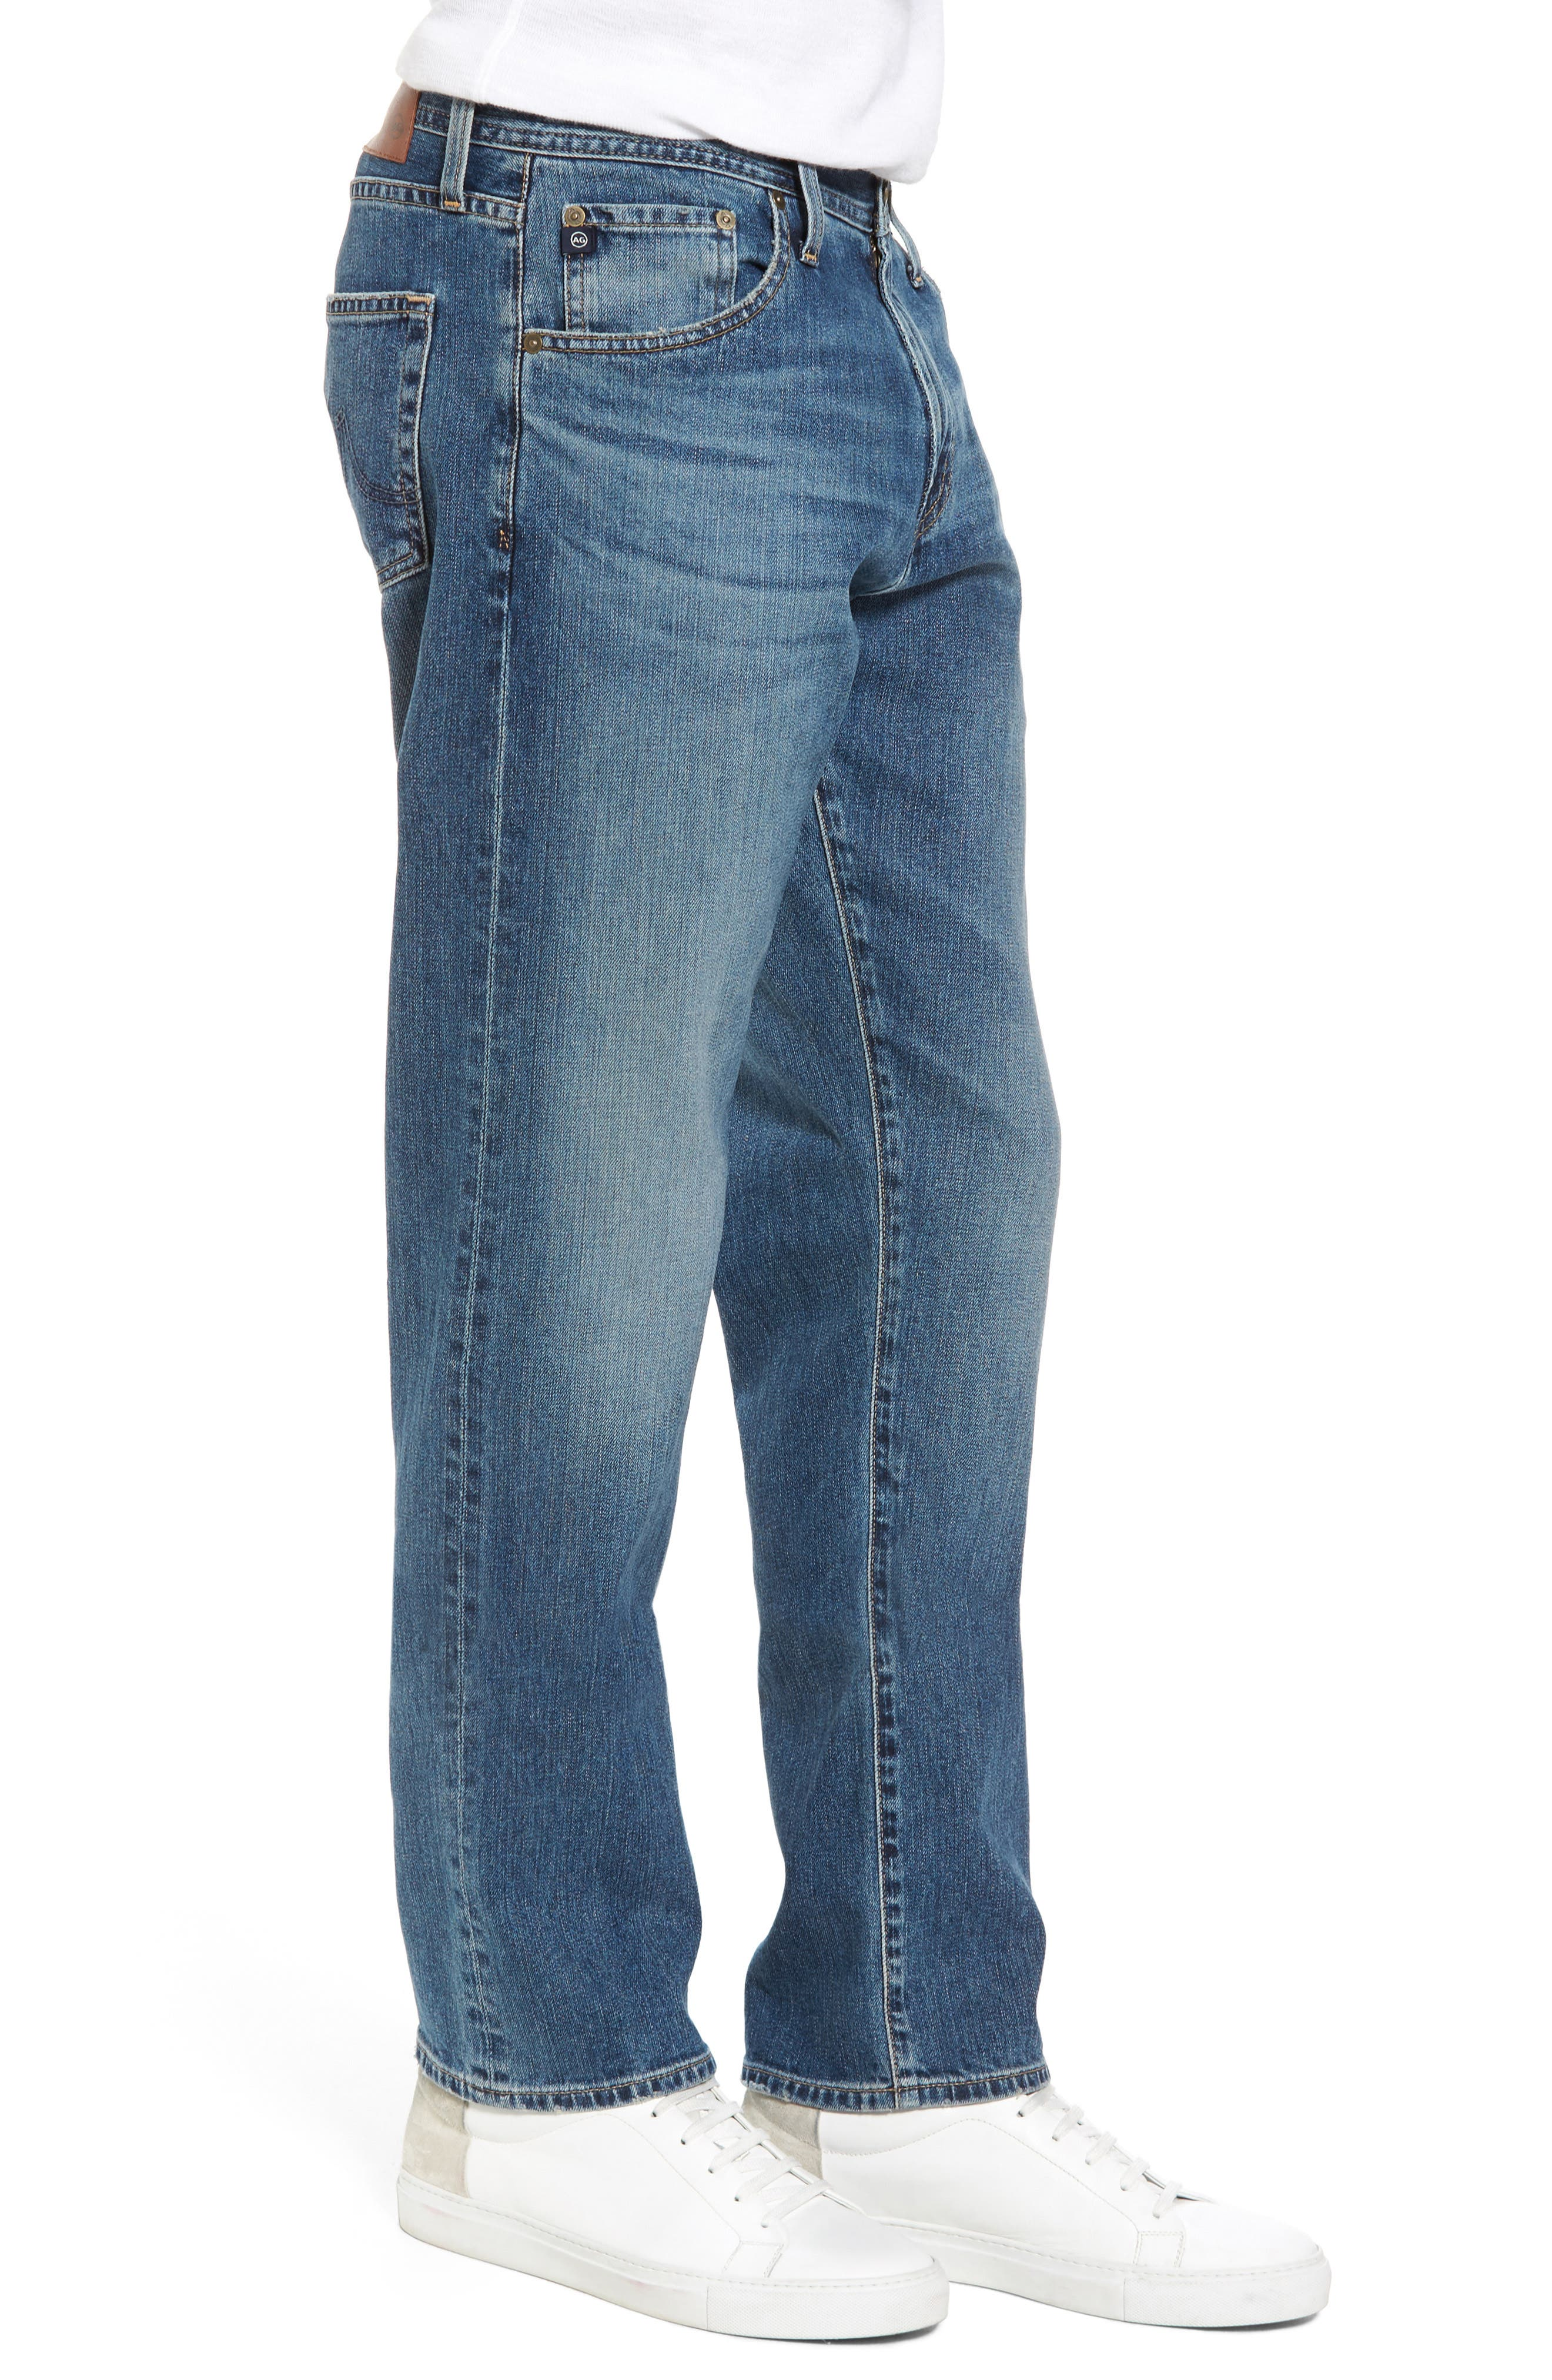 Ives Straight Fit Jeans,                             Alternate thumbnail 3, color,                             419